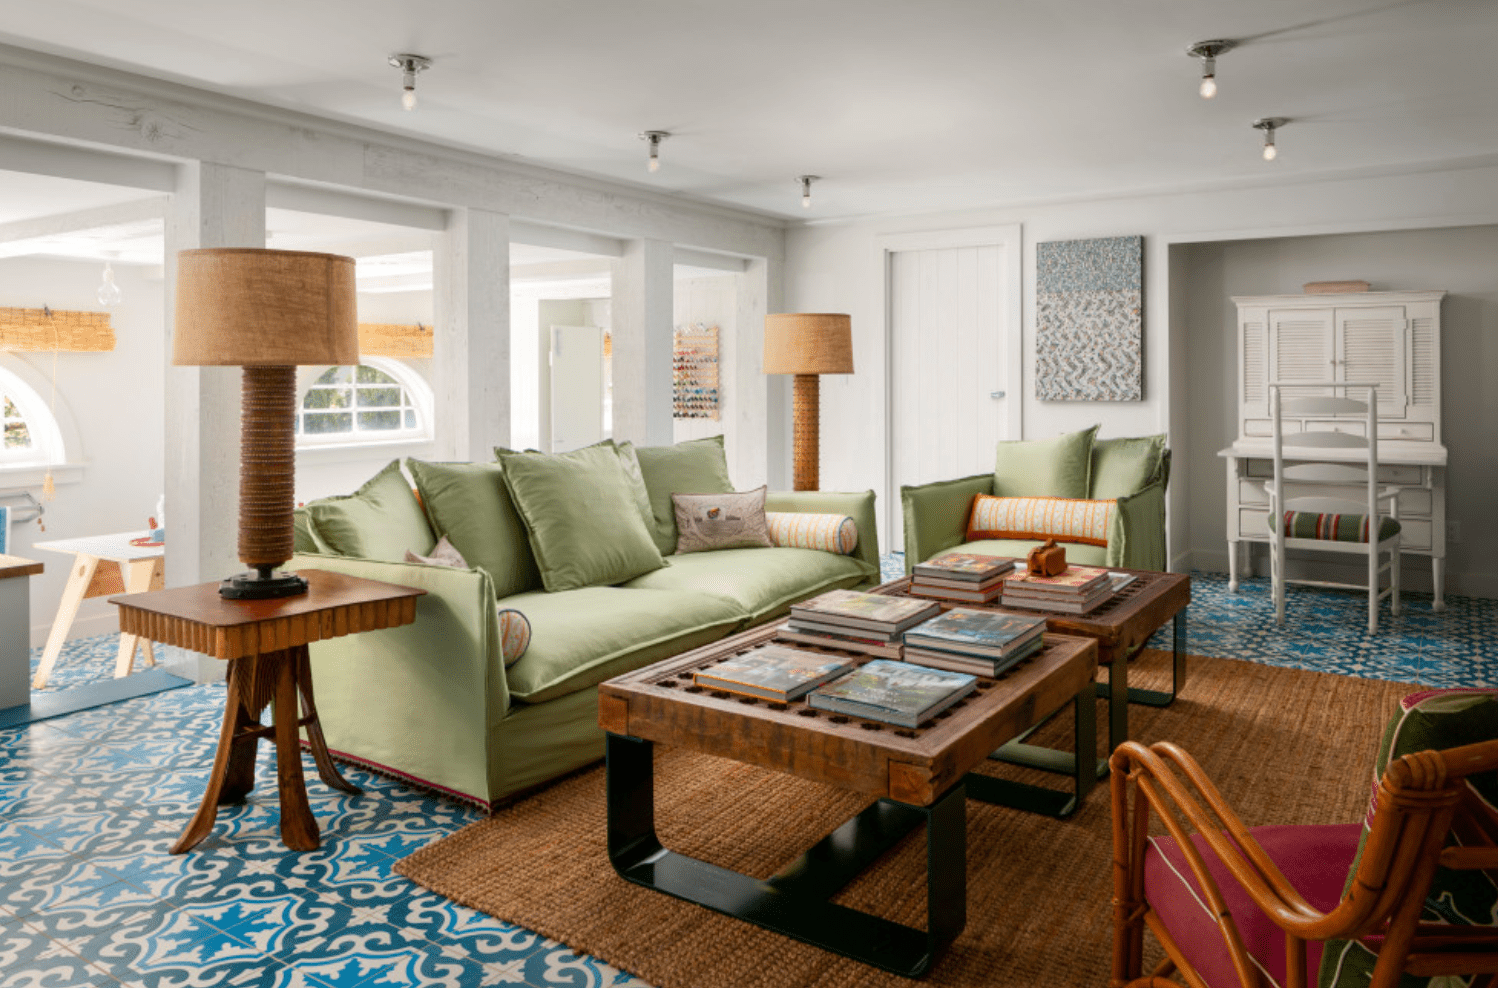 A spacious basement living room lit with semi-flush mounts and large table lamps